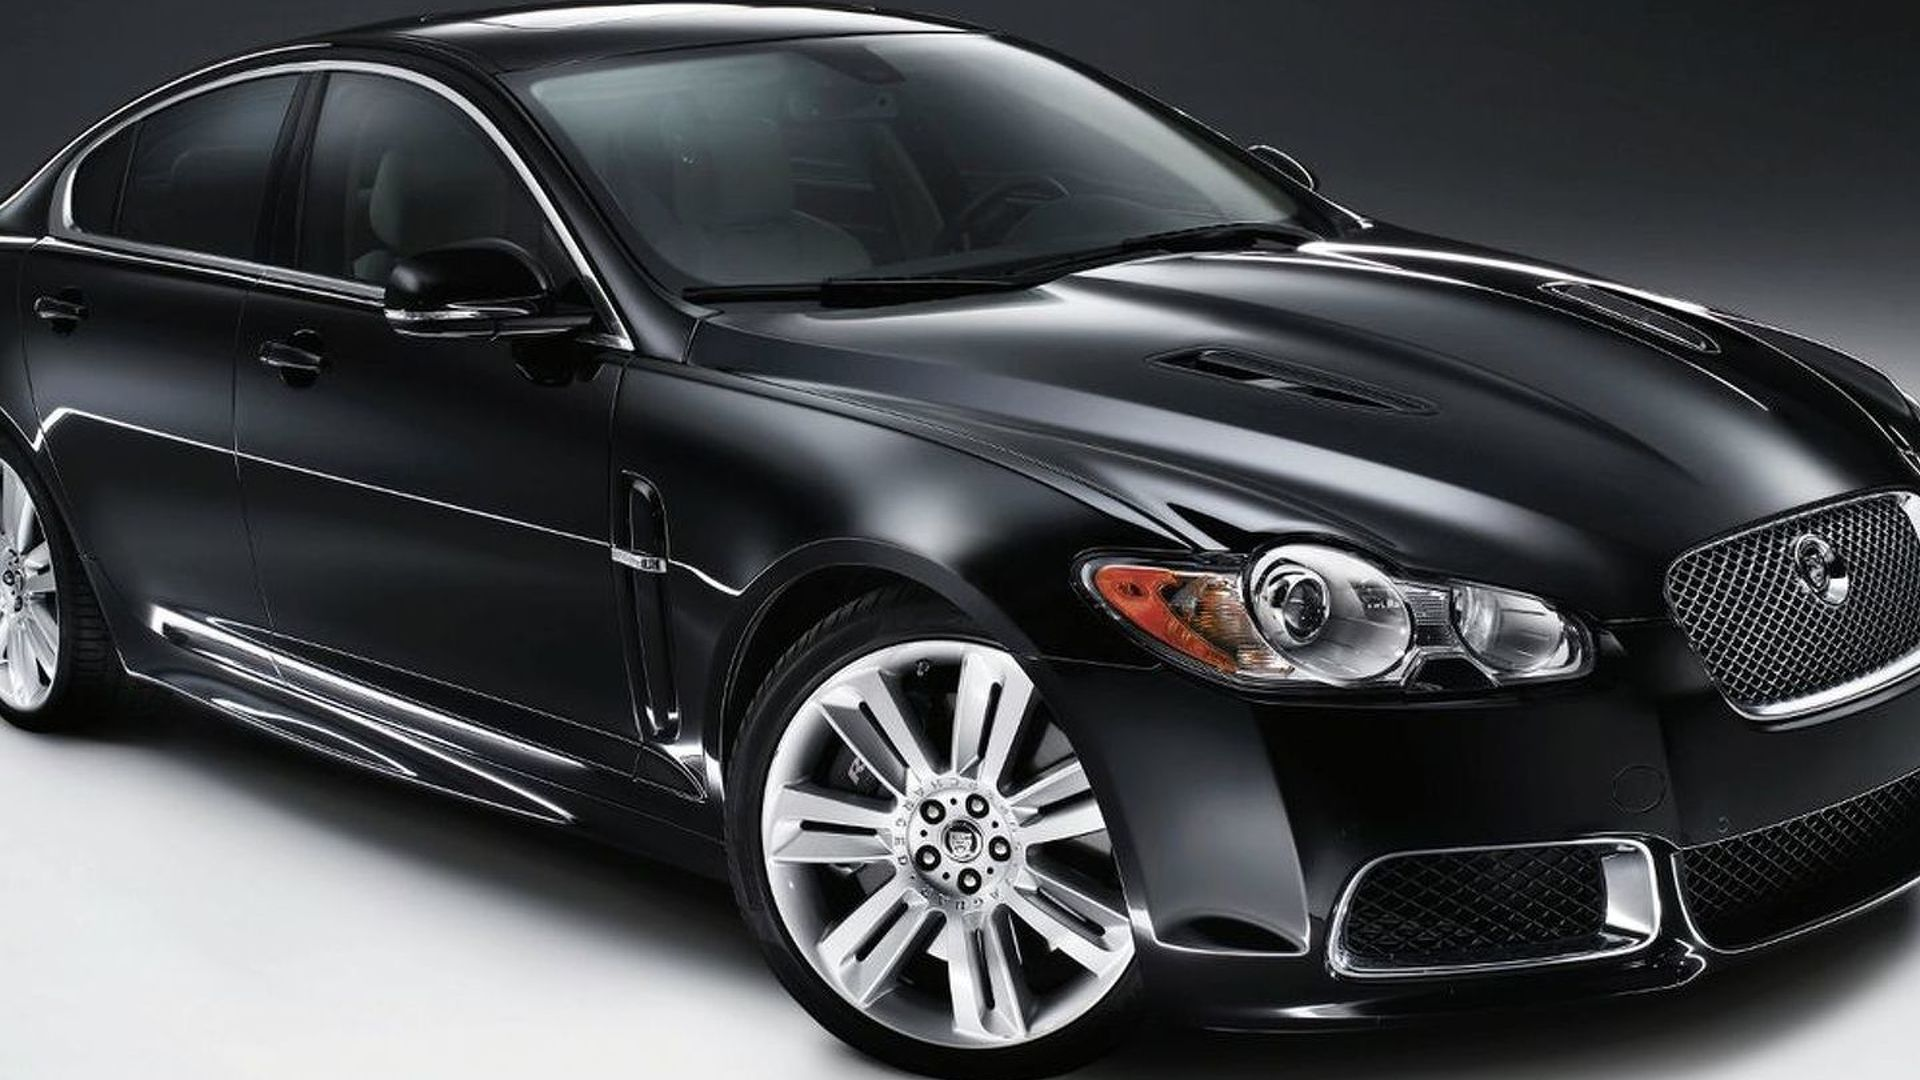 le supercharged dsc jaguar xf west edition inventory ltd xfr mans